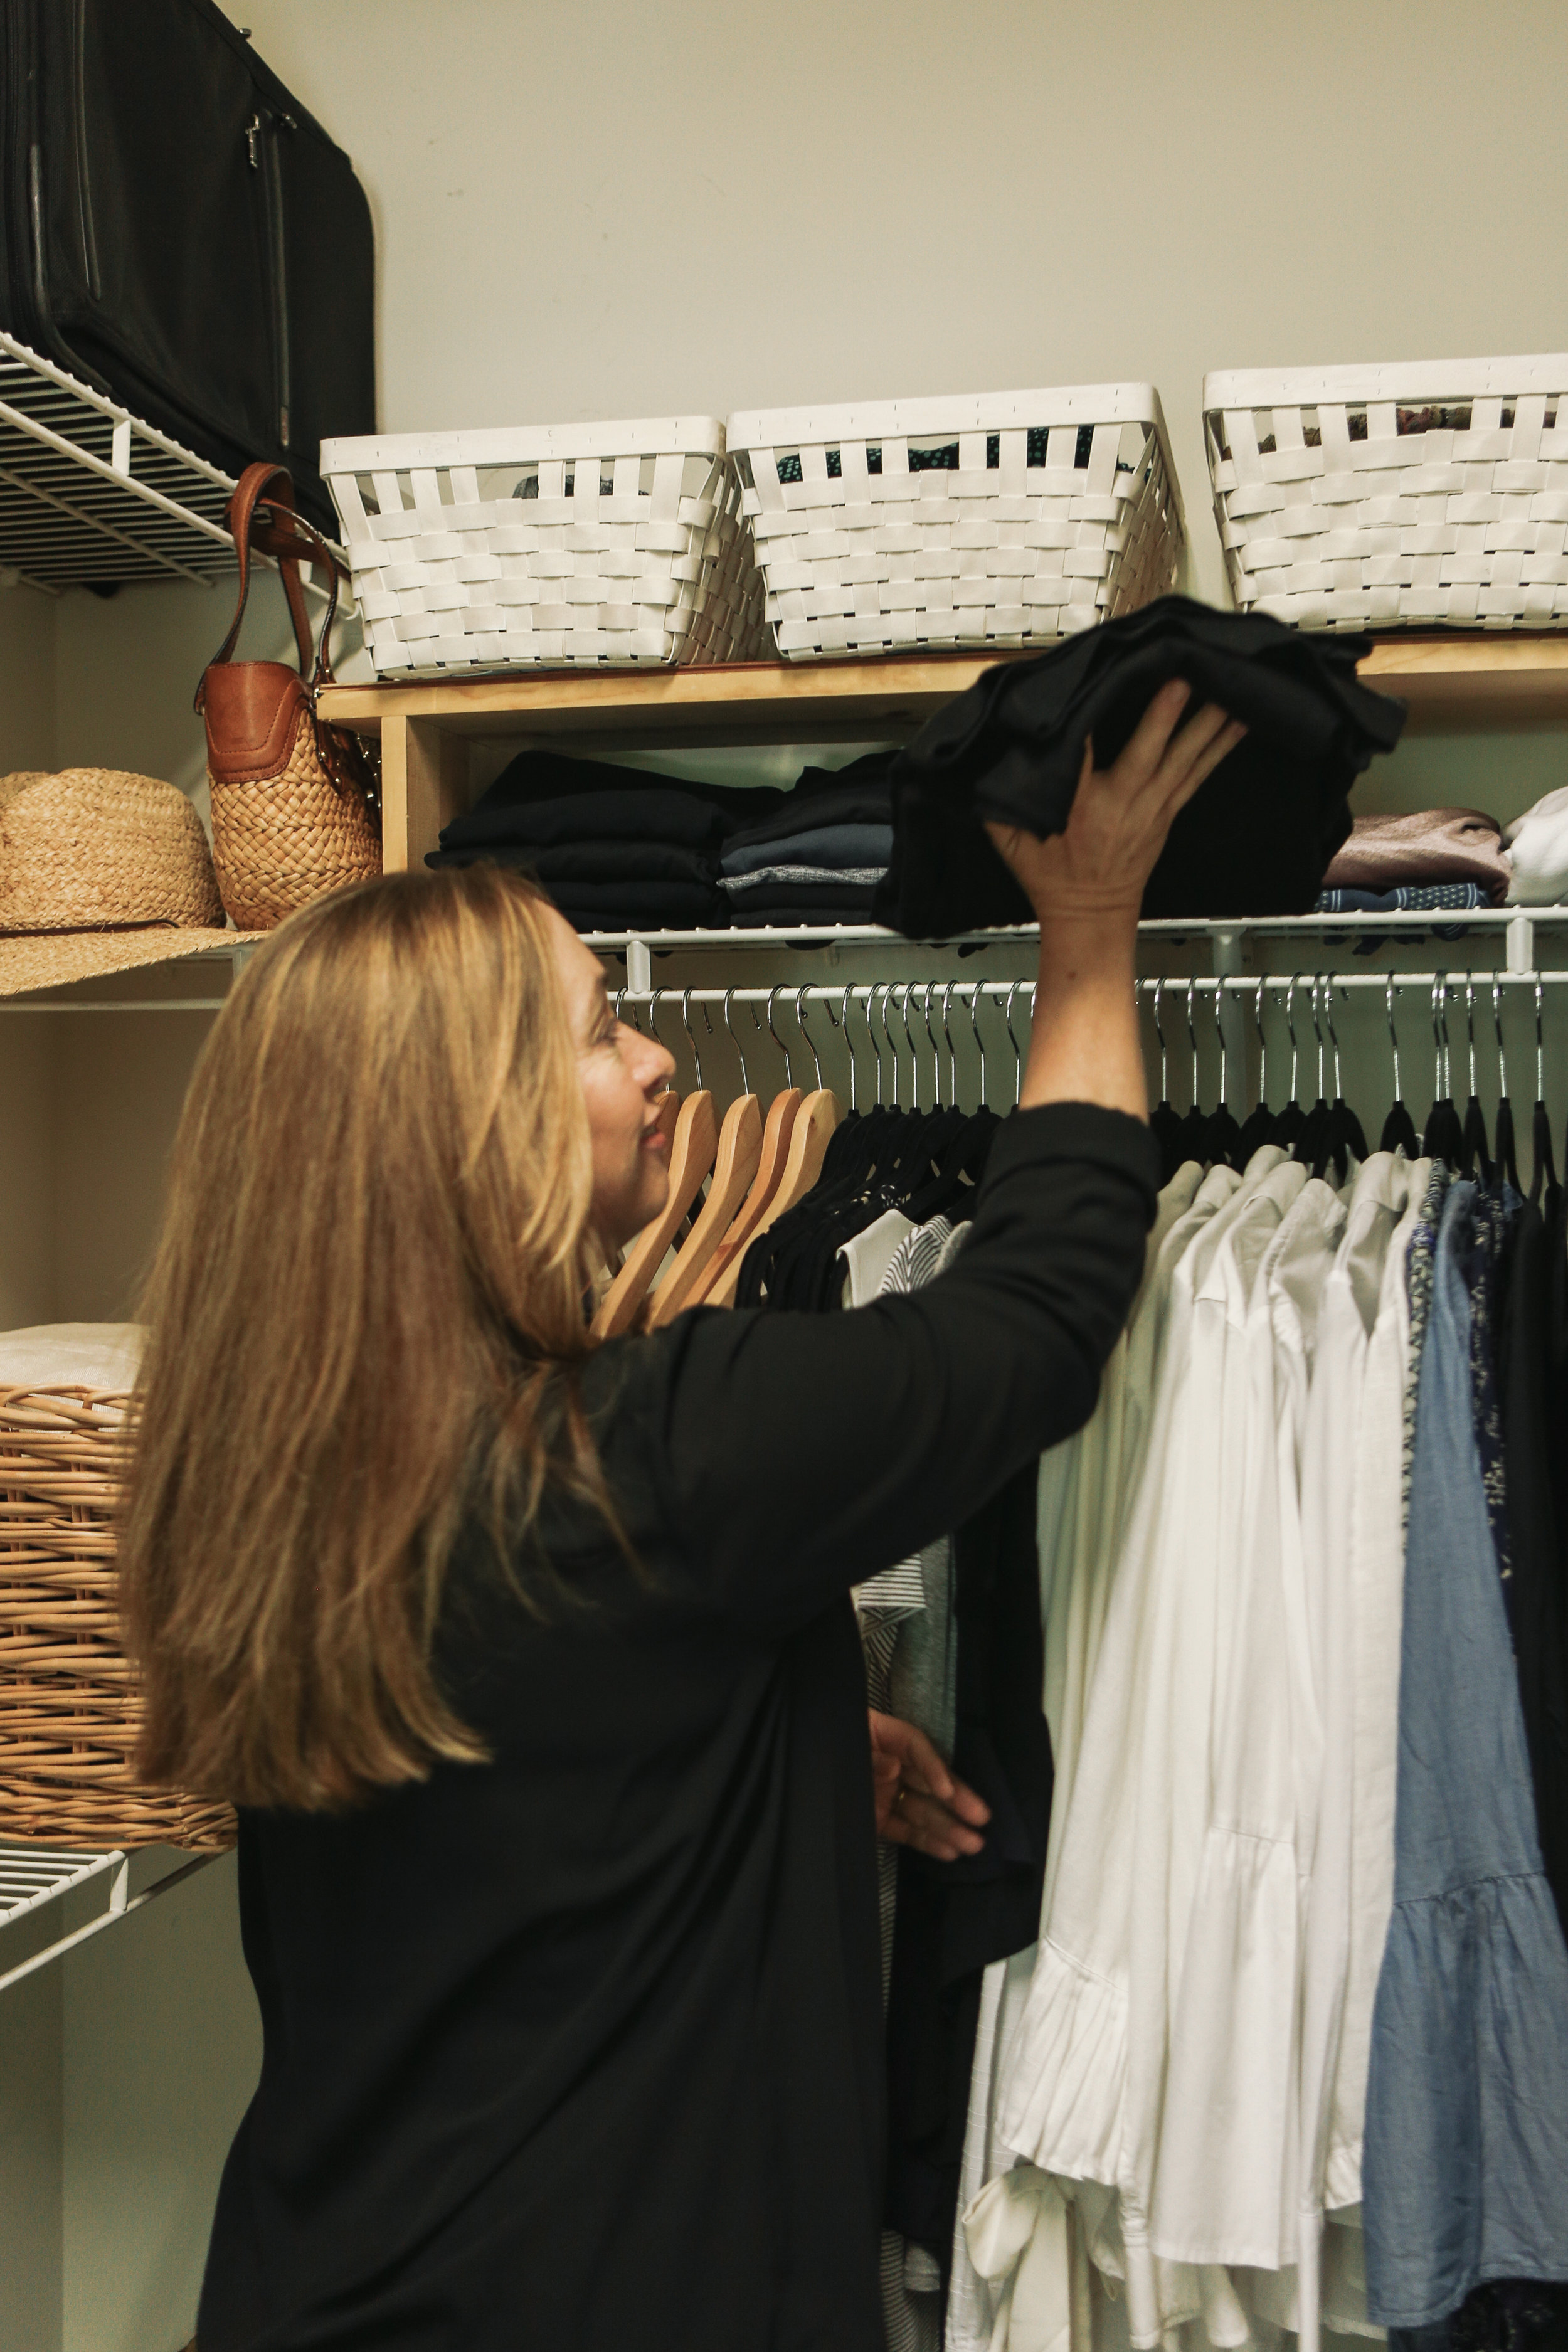 Step 4 - If you did not do a spring closet purge, now is a great time to do it! With your summer closet organized, color coded and edited, it is much easier to see duplicates, pieces that don't fit properly, items that were gifts that you don't love, or clothing that has seen better days. Remove anything that you no longer need or love!